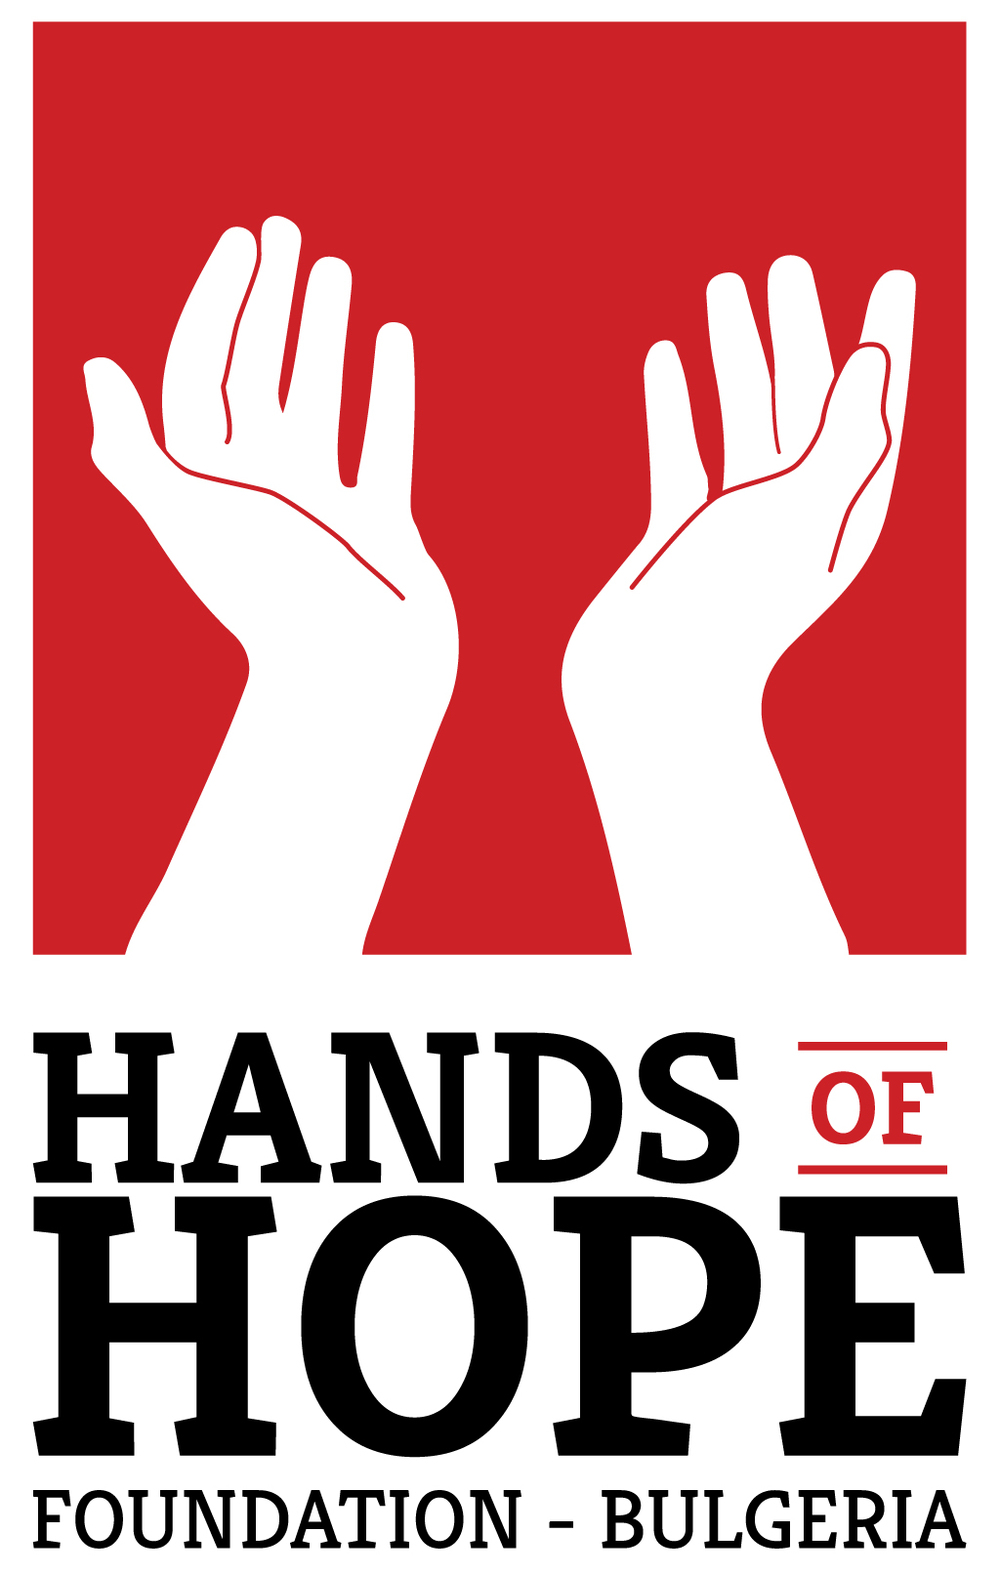 hands-of-hope-Bulgeria.jpg